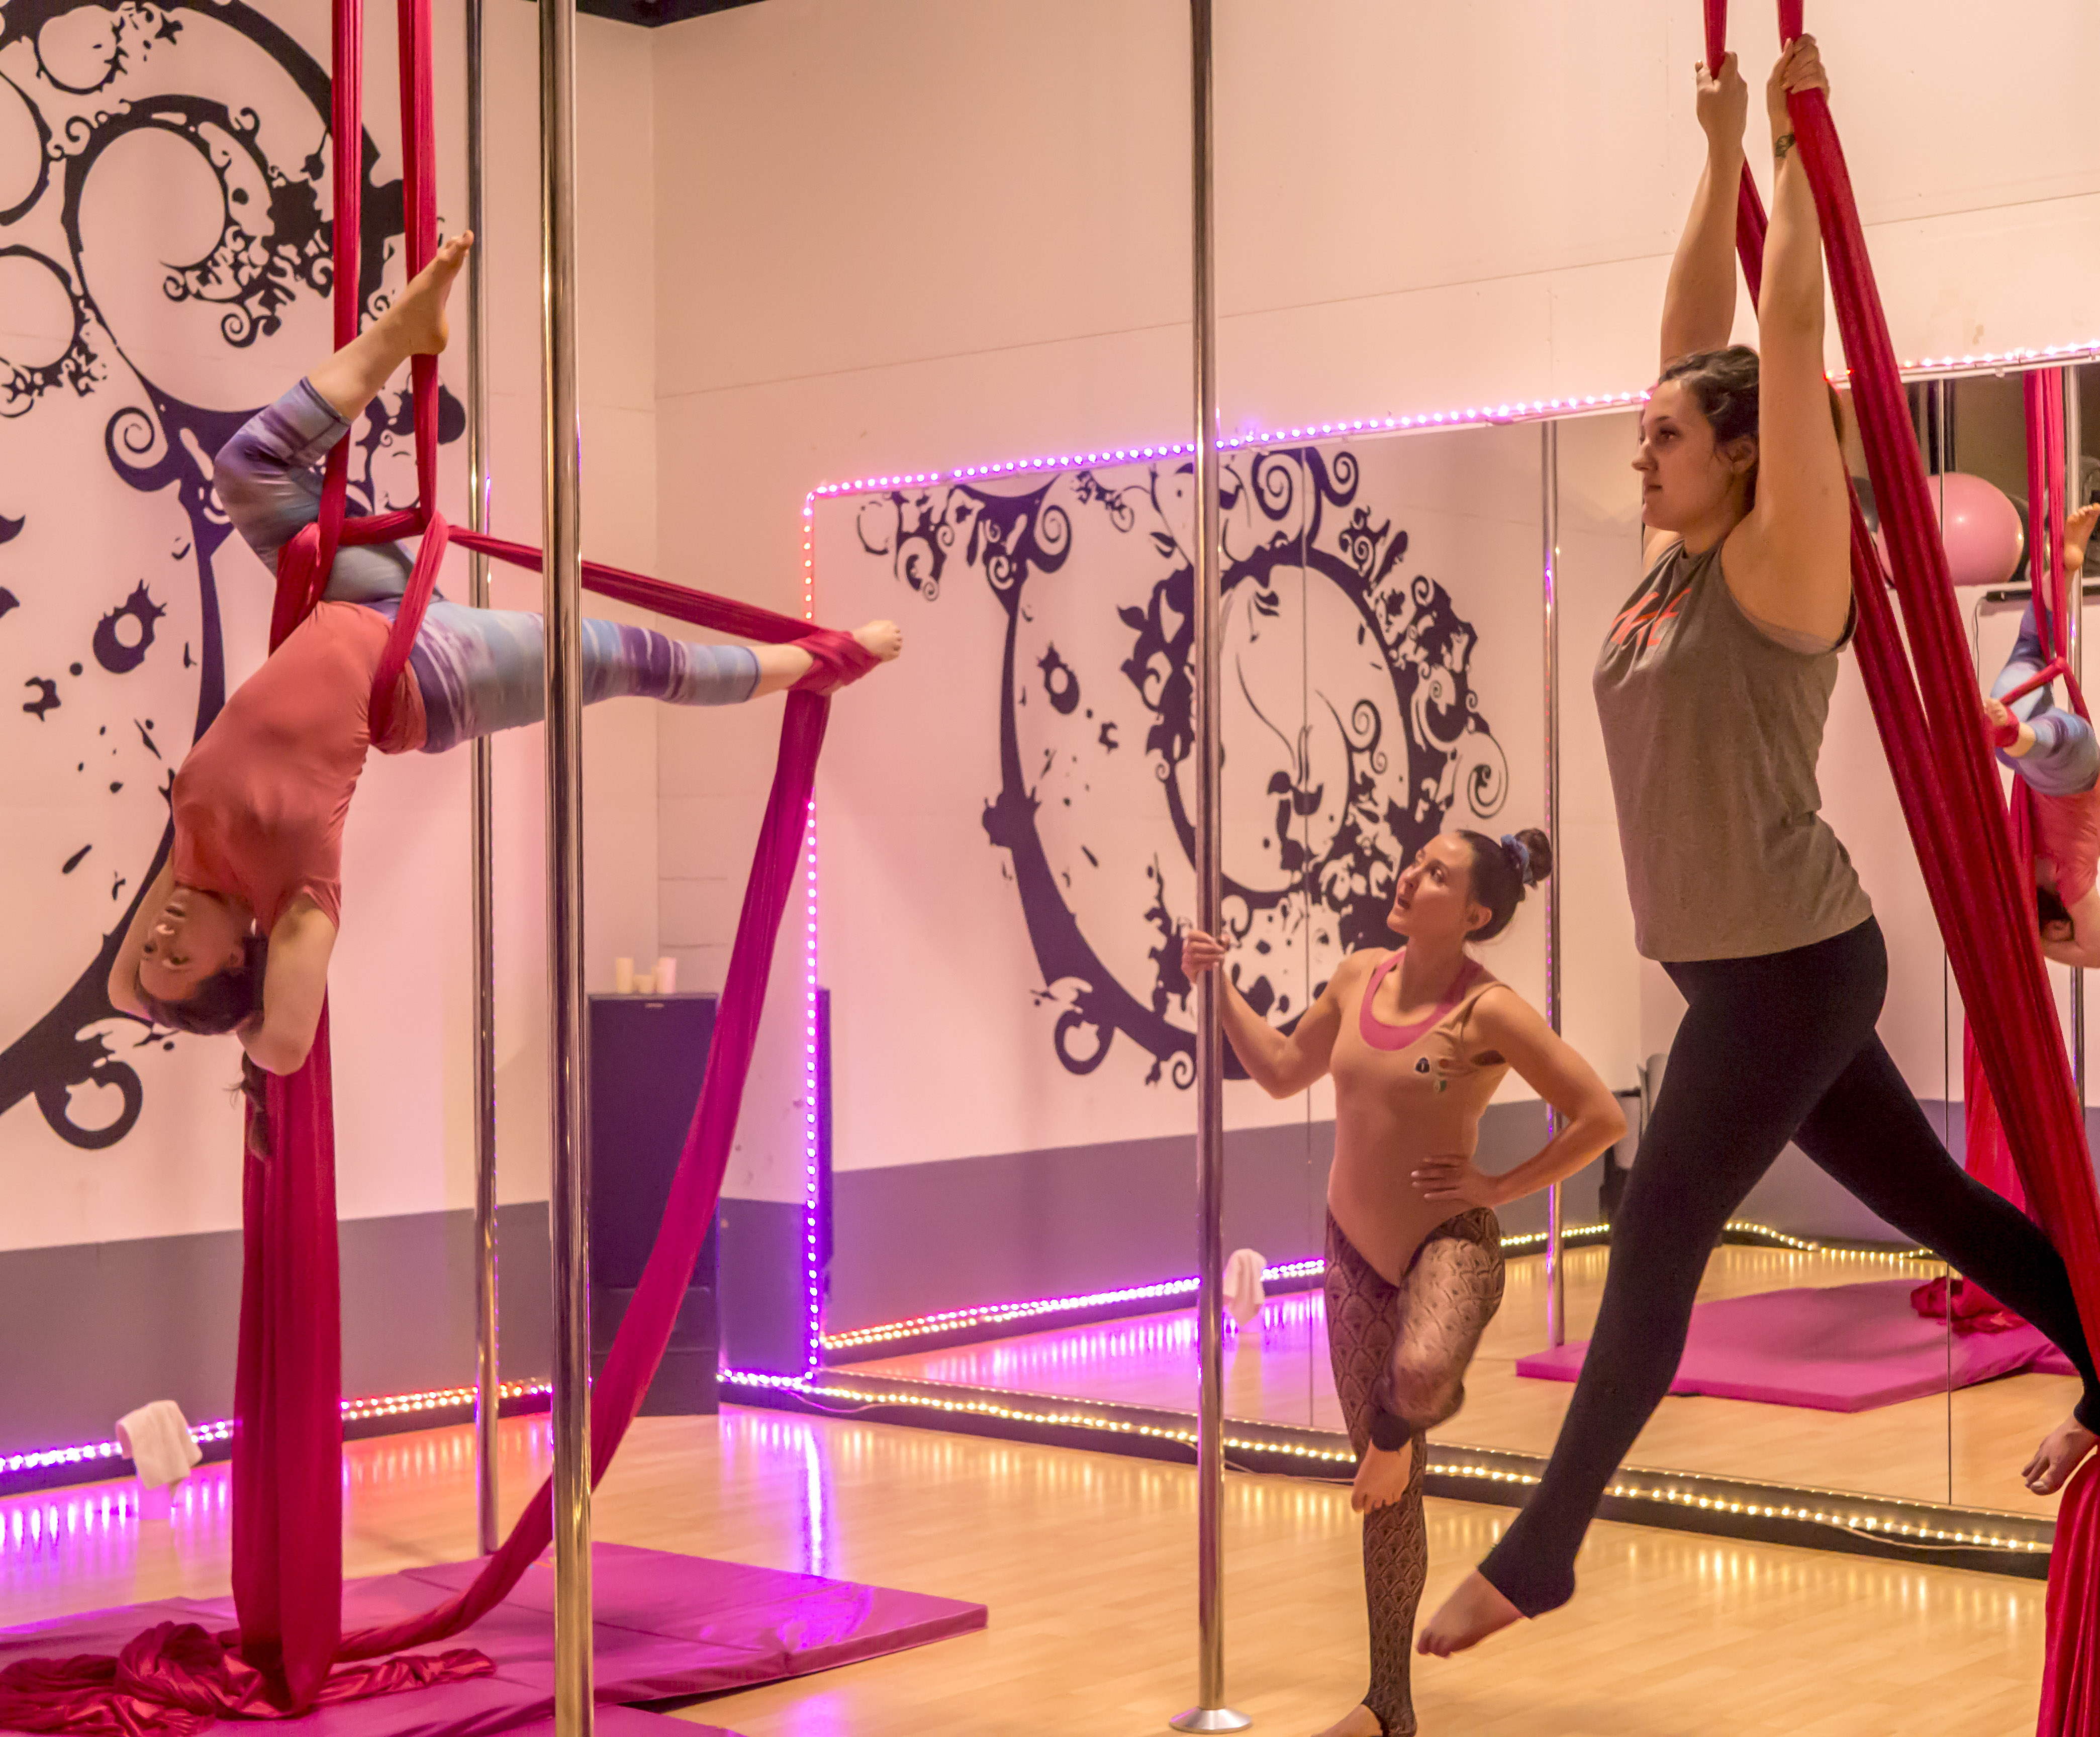 Pole Dance & Fitness Rogue Valley - Aerial Silks